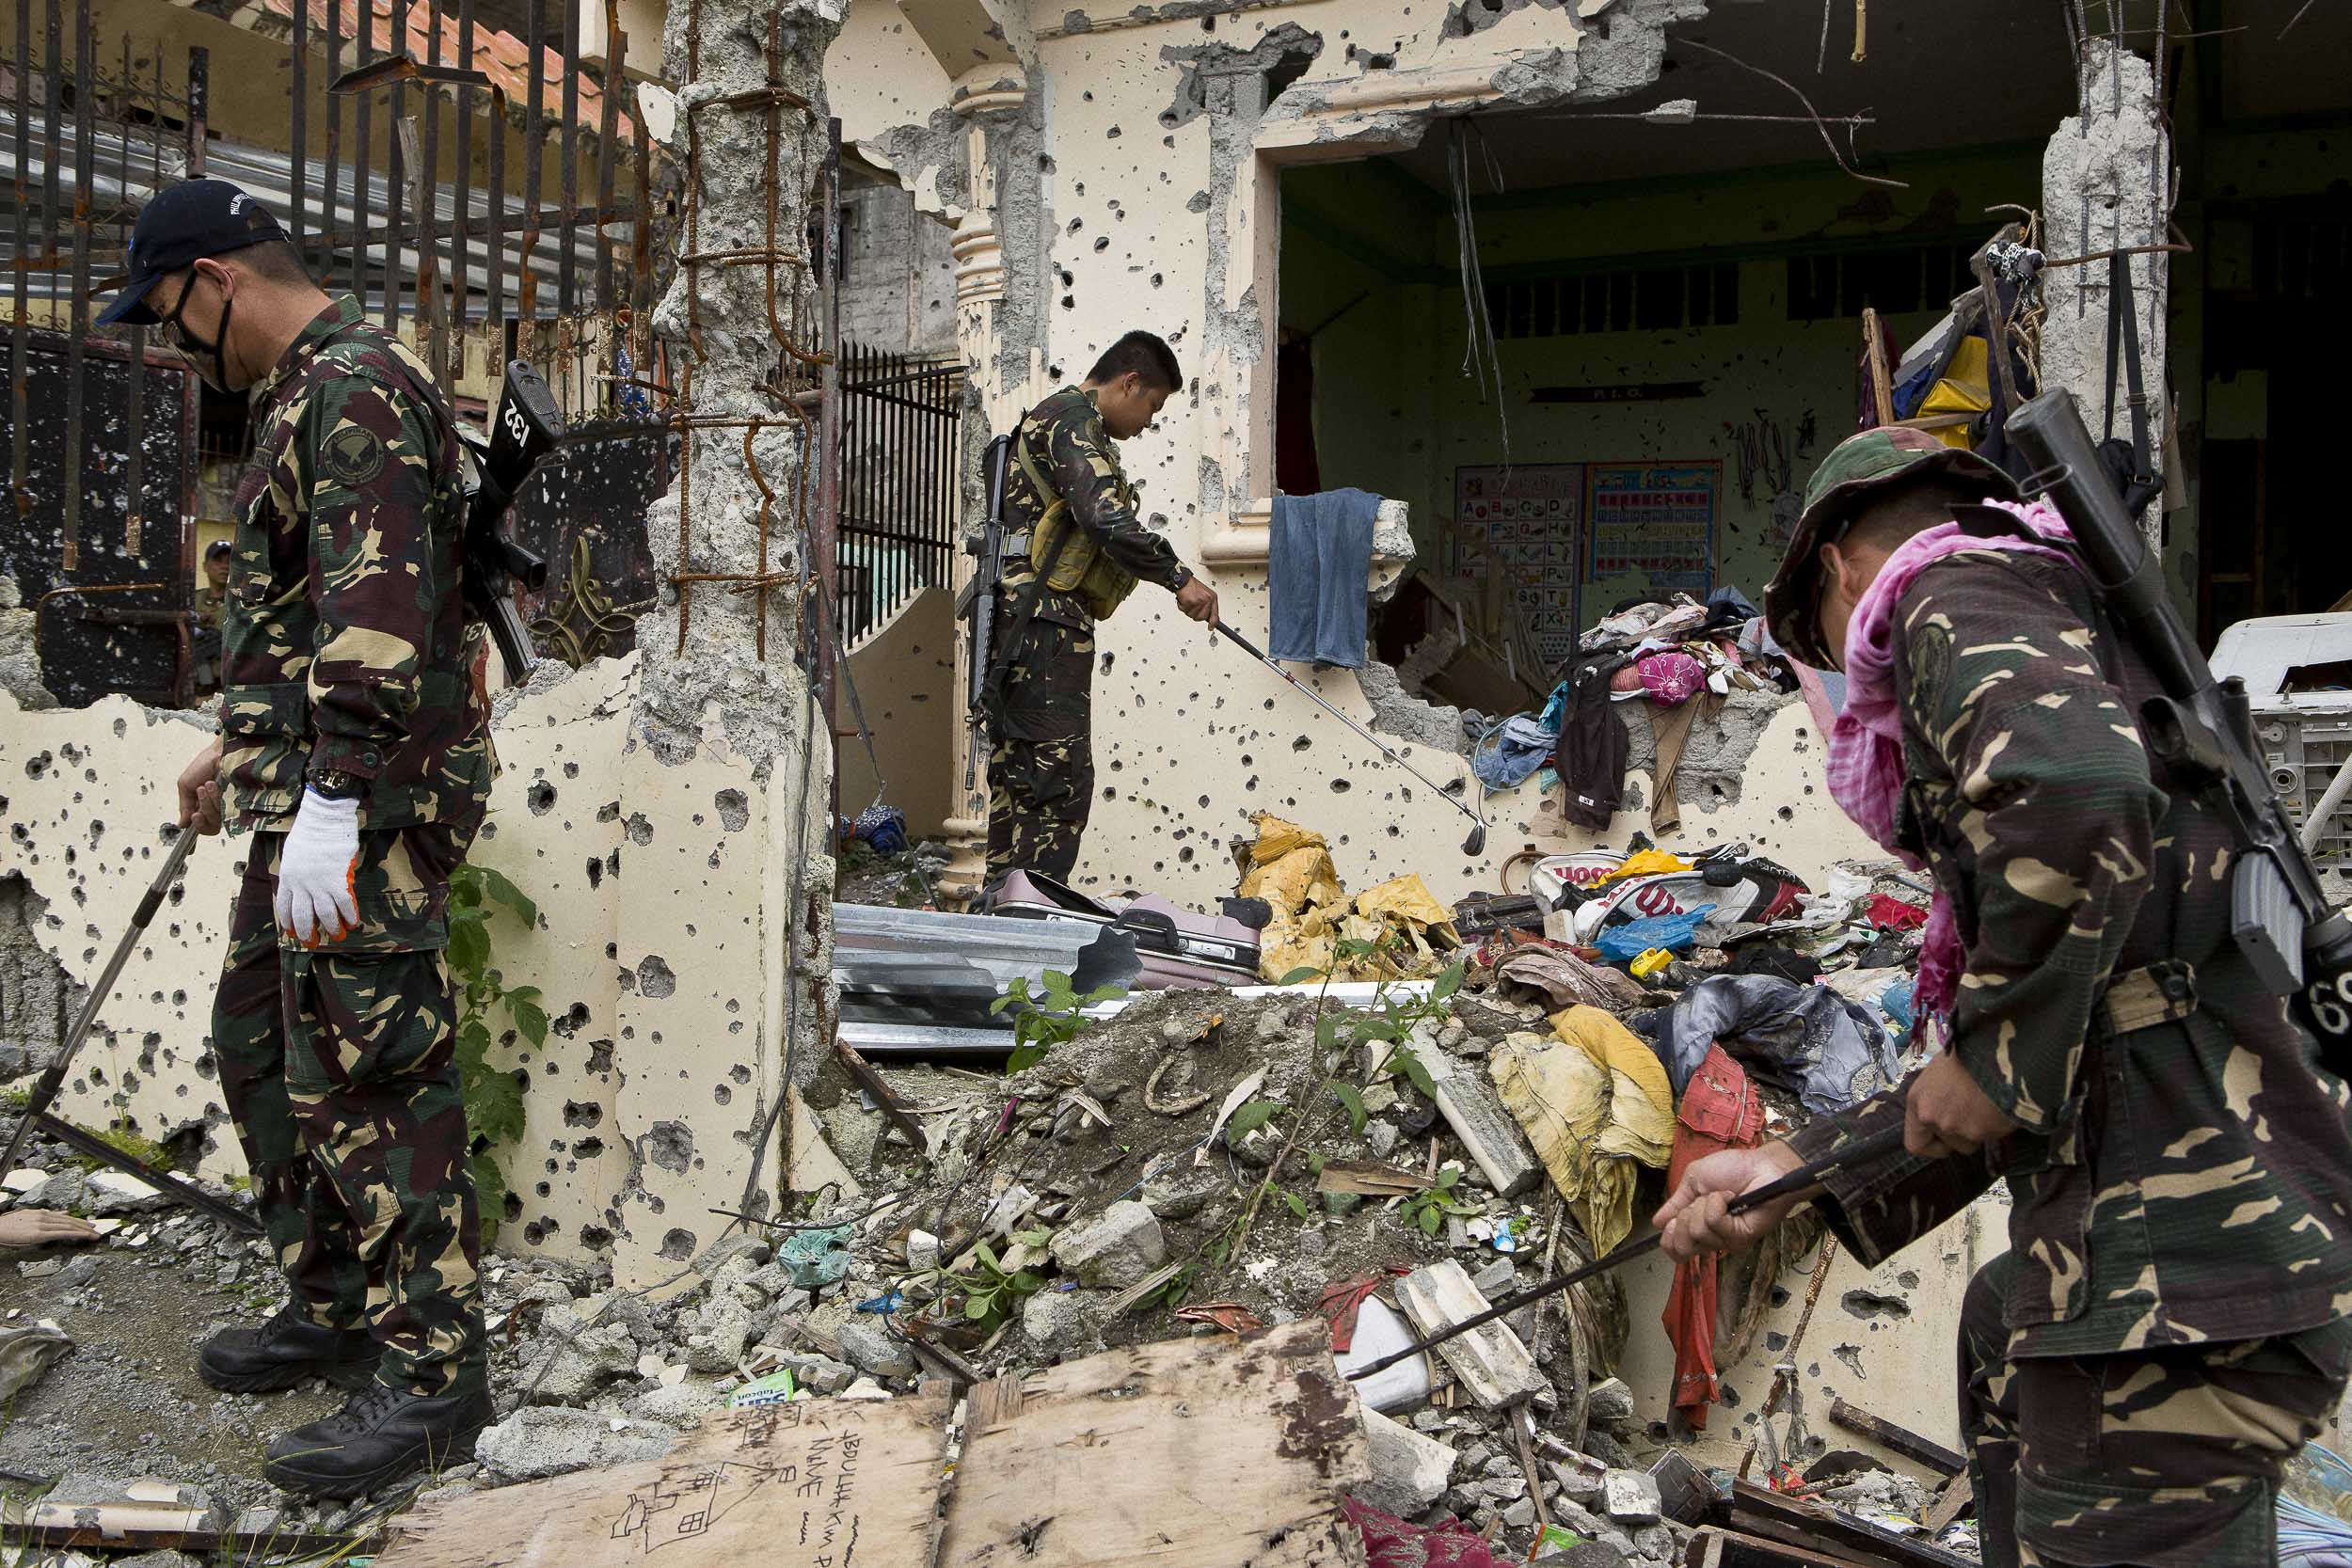 Members of a military joint task force working to clear the main battle area of Marawi of explosives comb through debris using golf clubs.